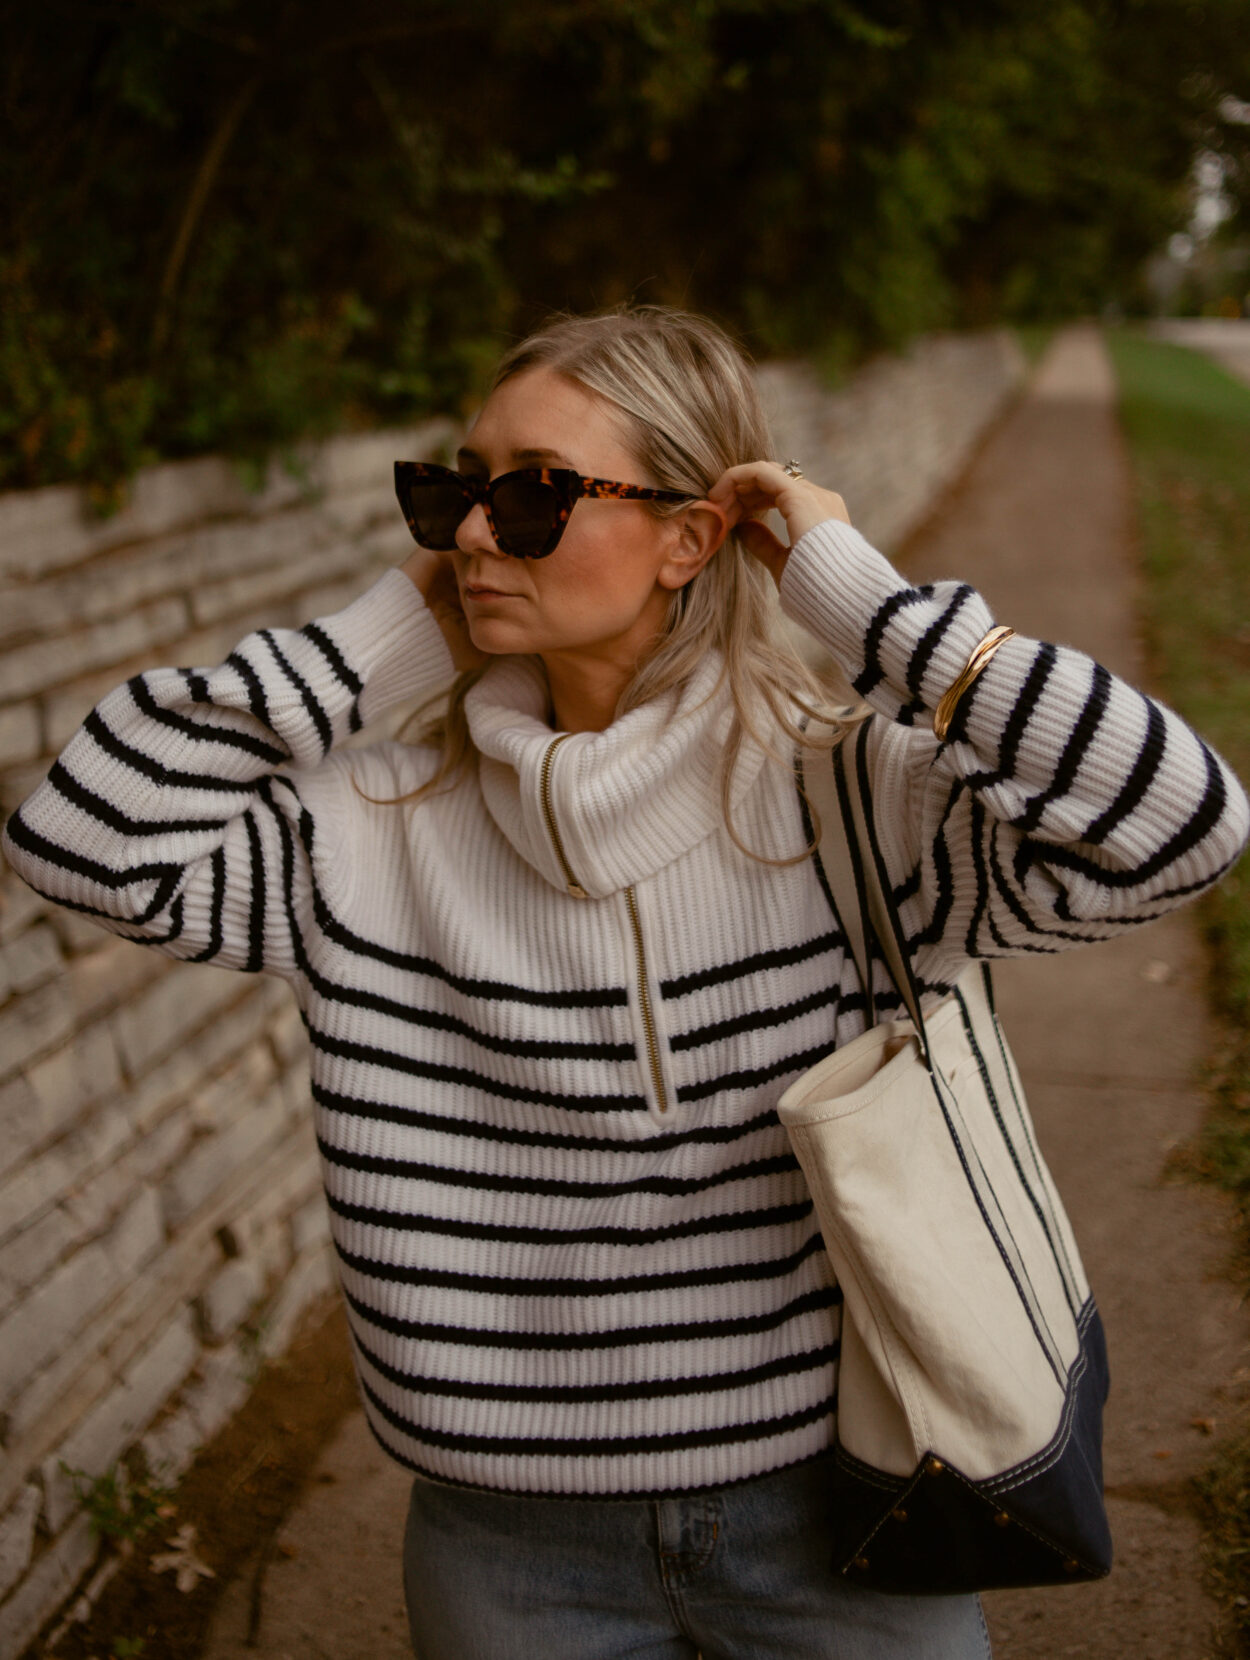 Karin Emily Wears a cashmere breton stripe sweater, light wash relaxed jeans, and sherpa mules - all from J. Crew